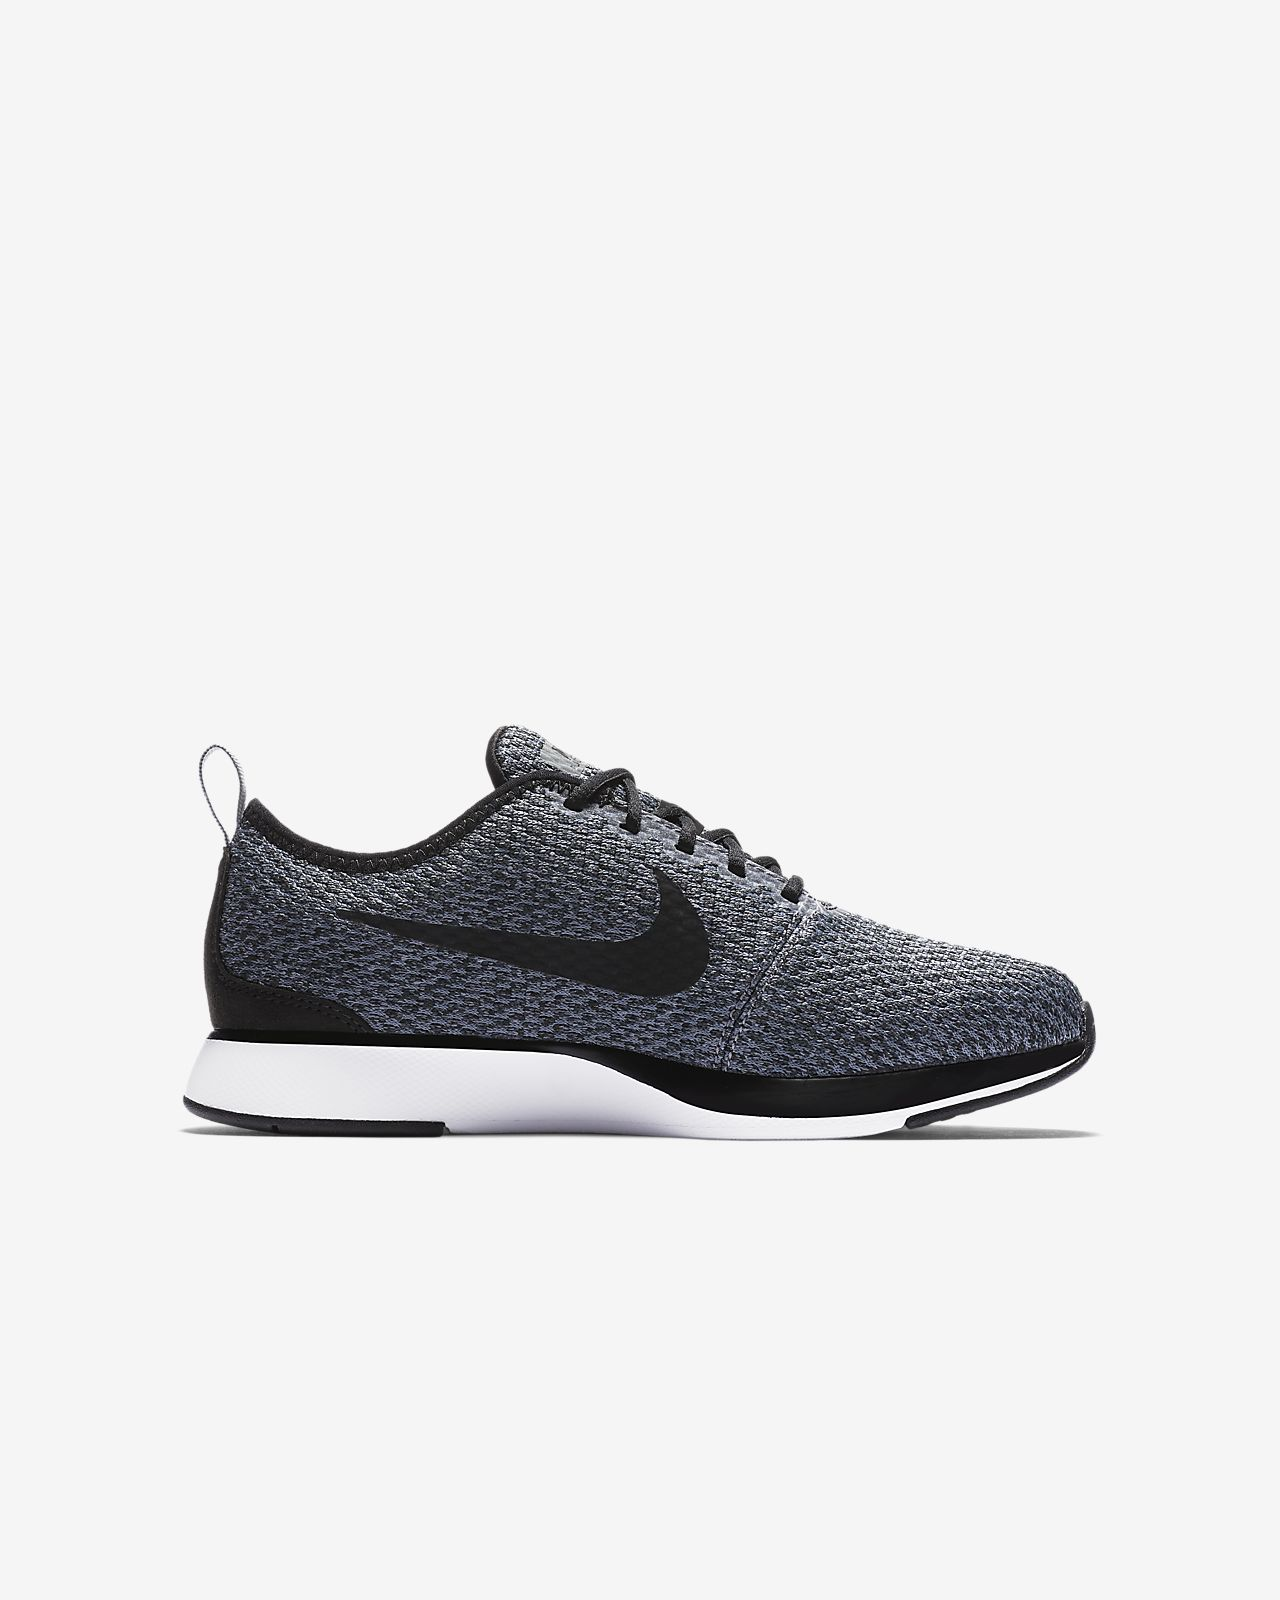 ... Nike Dualtone Racer SE Older Kids' Shoe